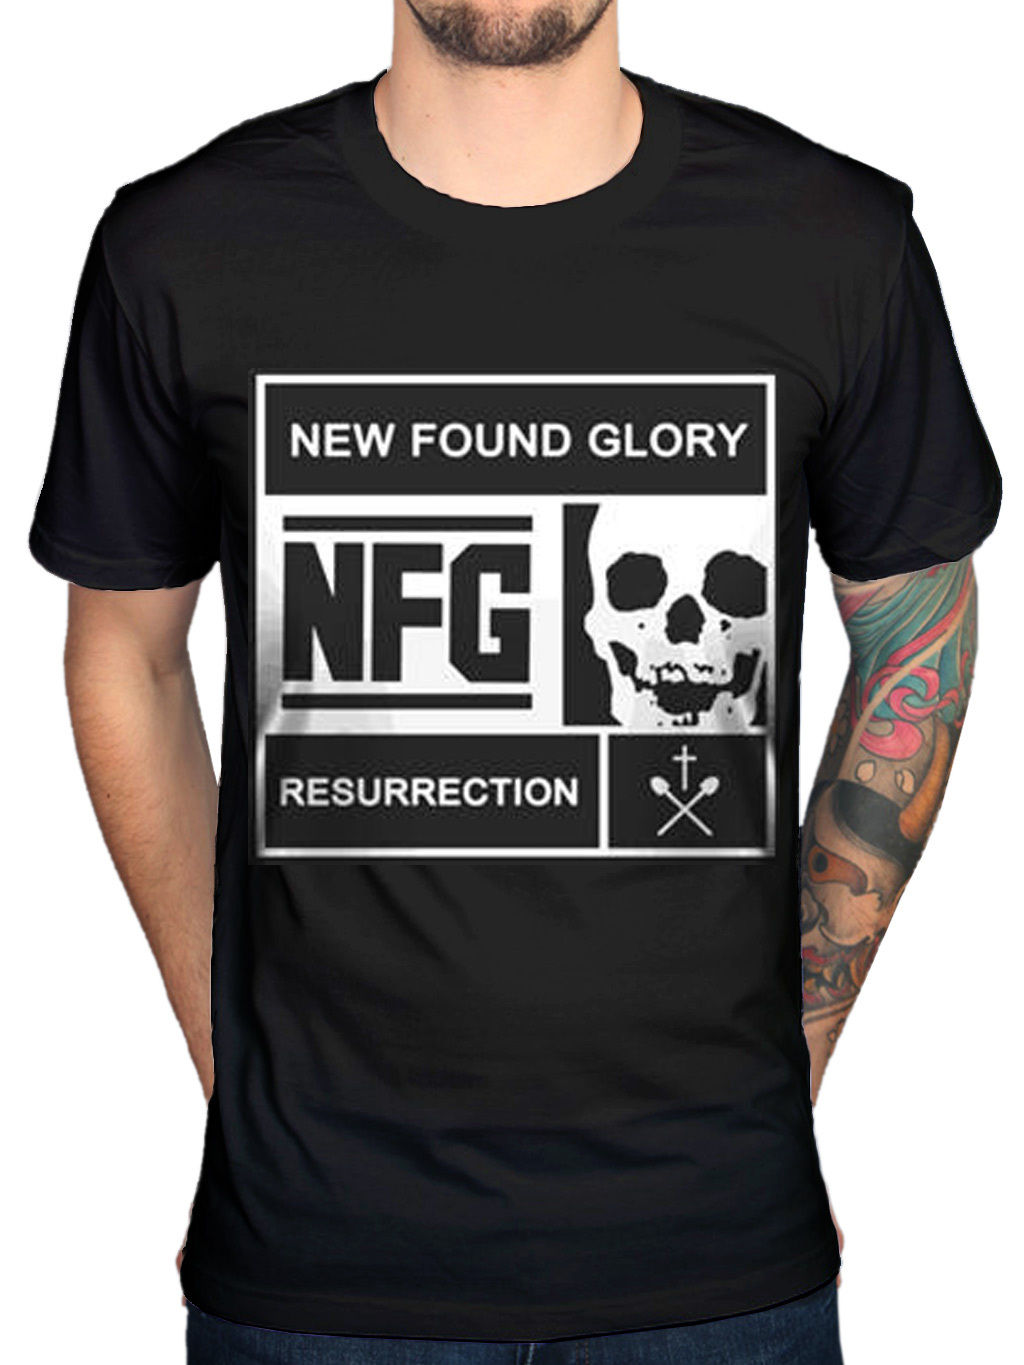 Official New Found Glory Blocked Resurrection T-Shirt Pop Punk Band Merchandise Funny Clothing Casual Short Sleeve T Shirts